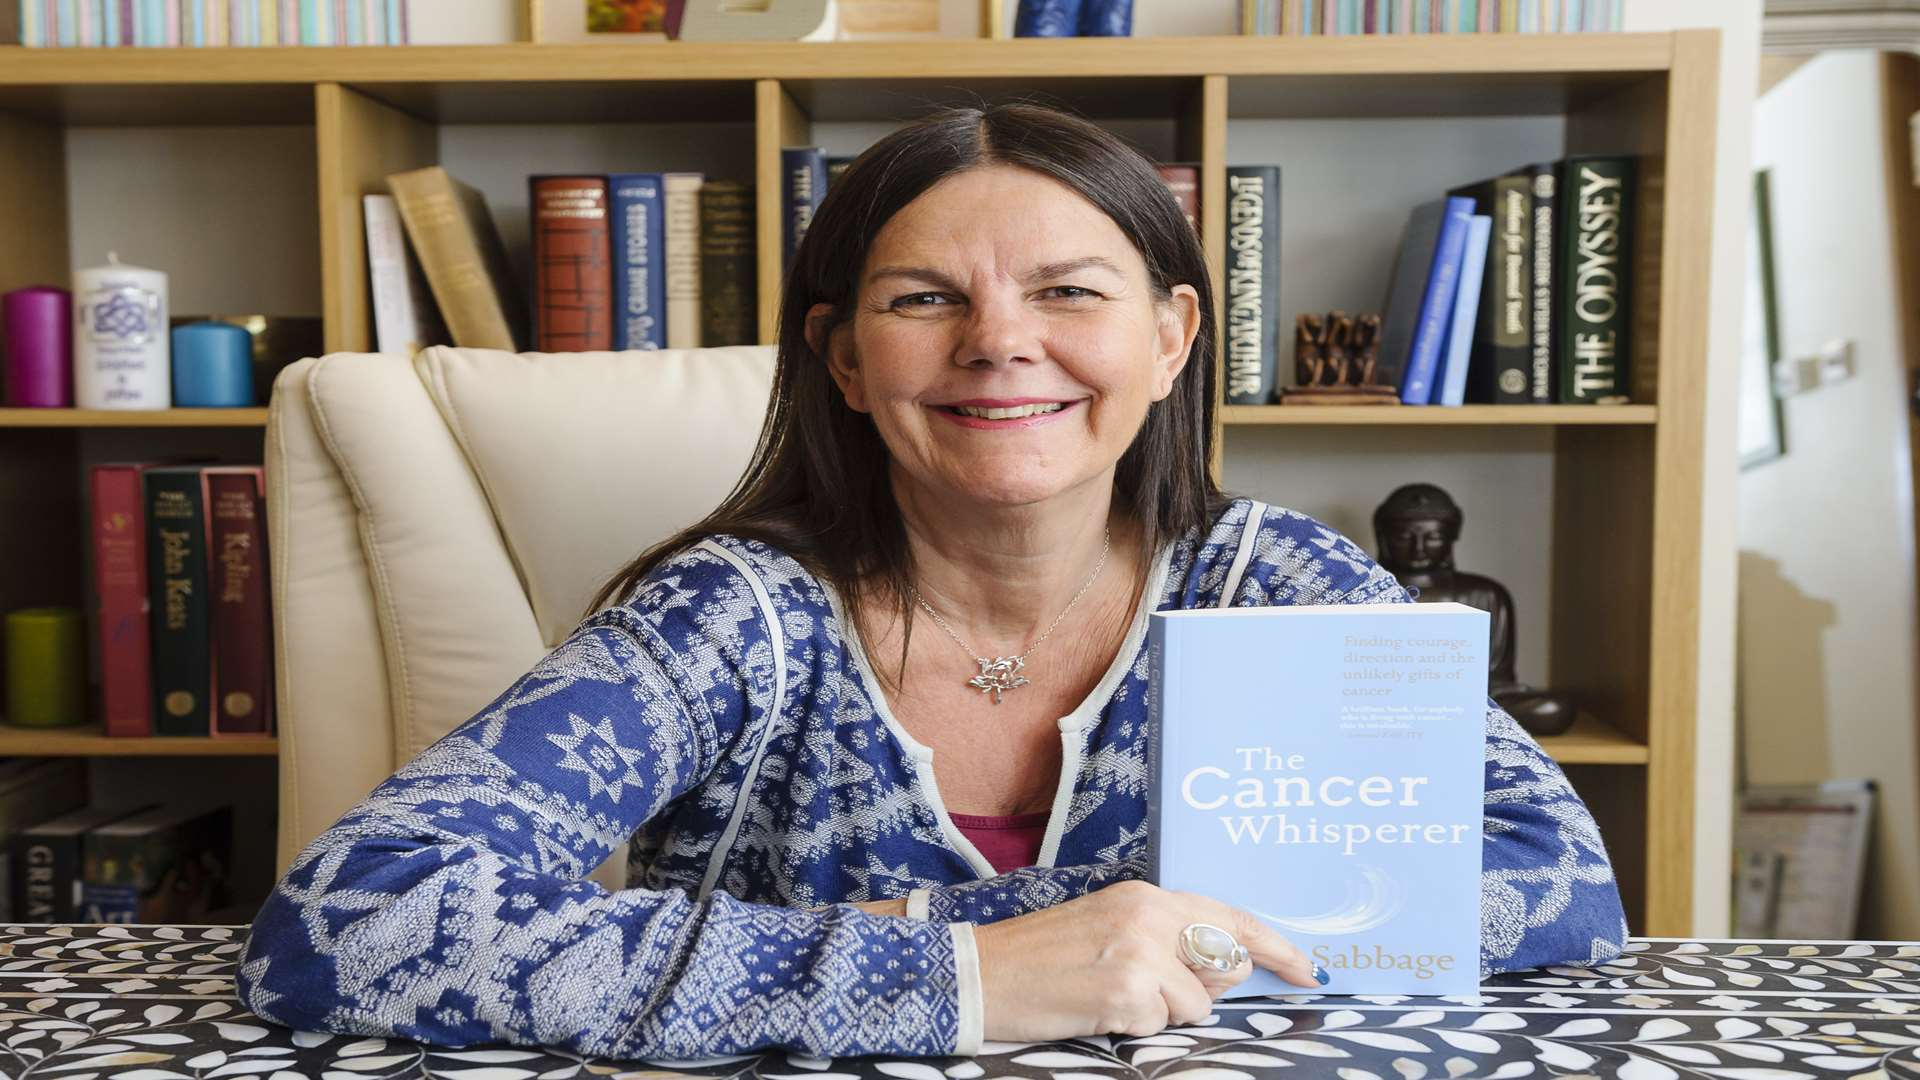 Sophie Sabbage has written a book detailing her experience with cancer, which she hopes will help others